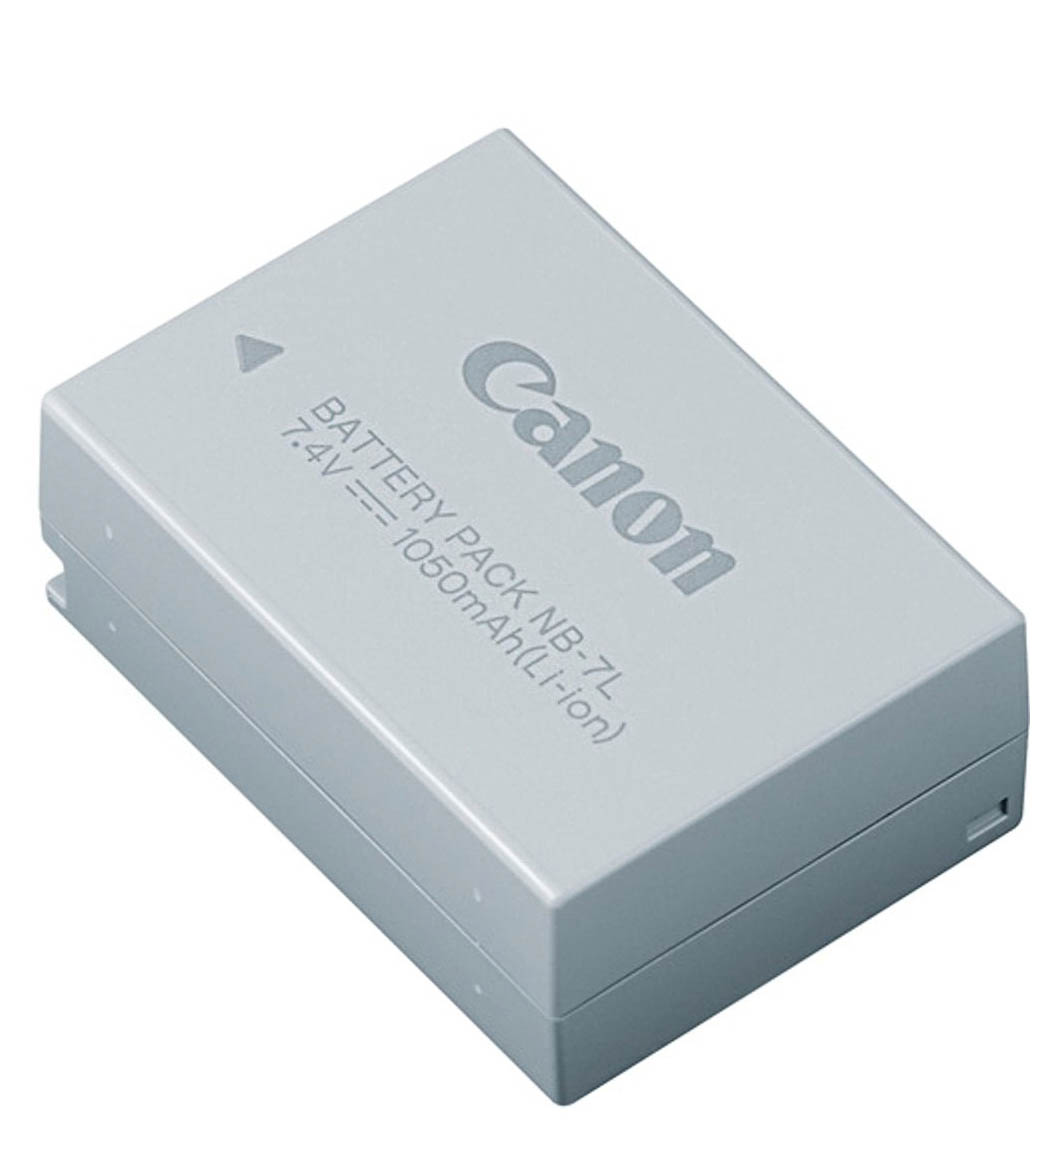 Canon NB-7L battery for Canon G10, G11, and G12